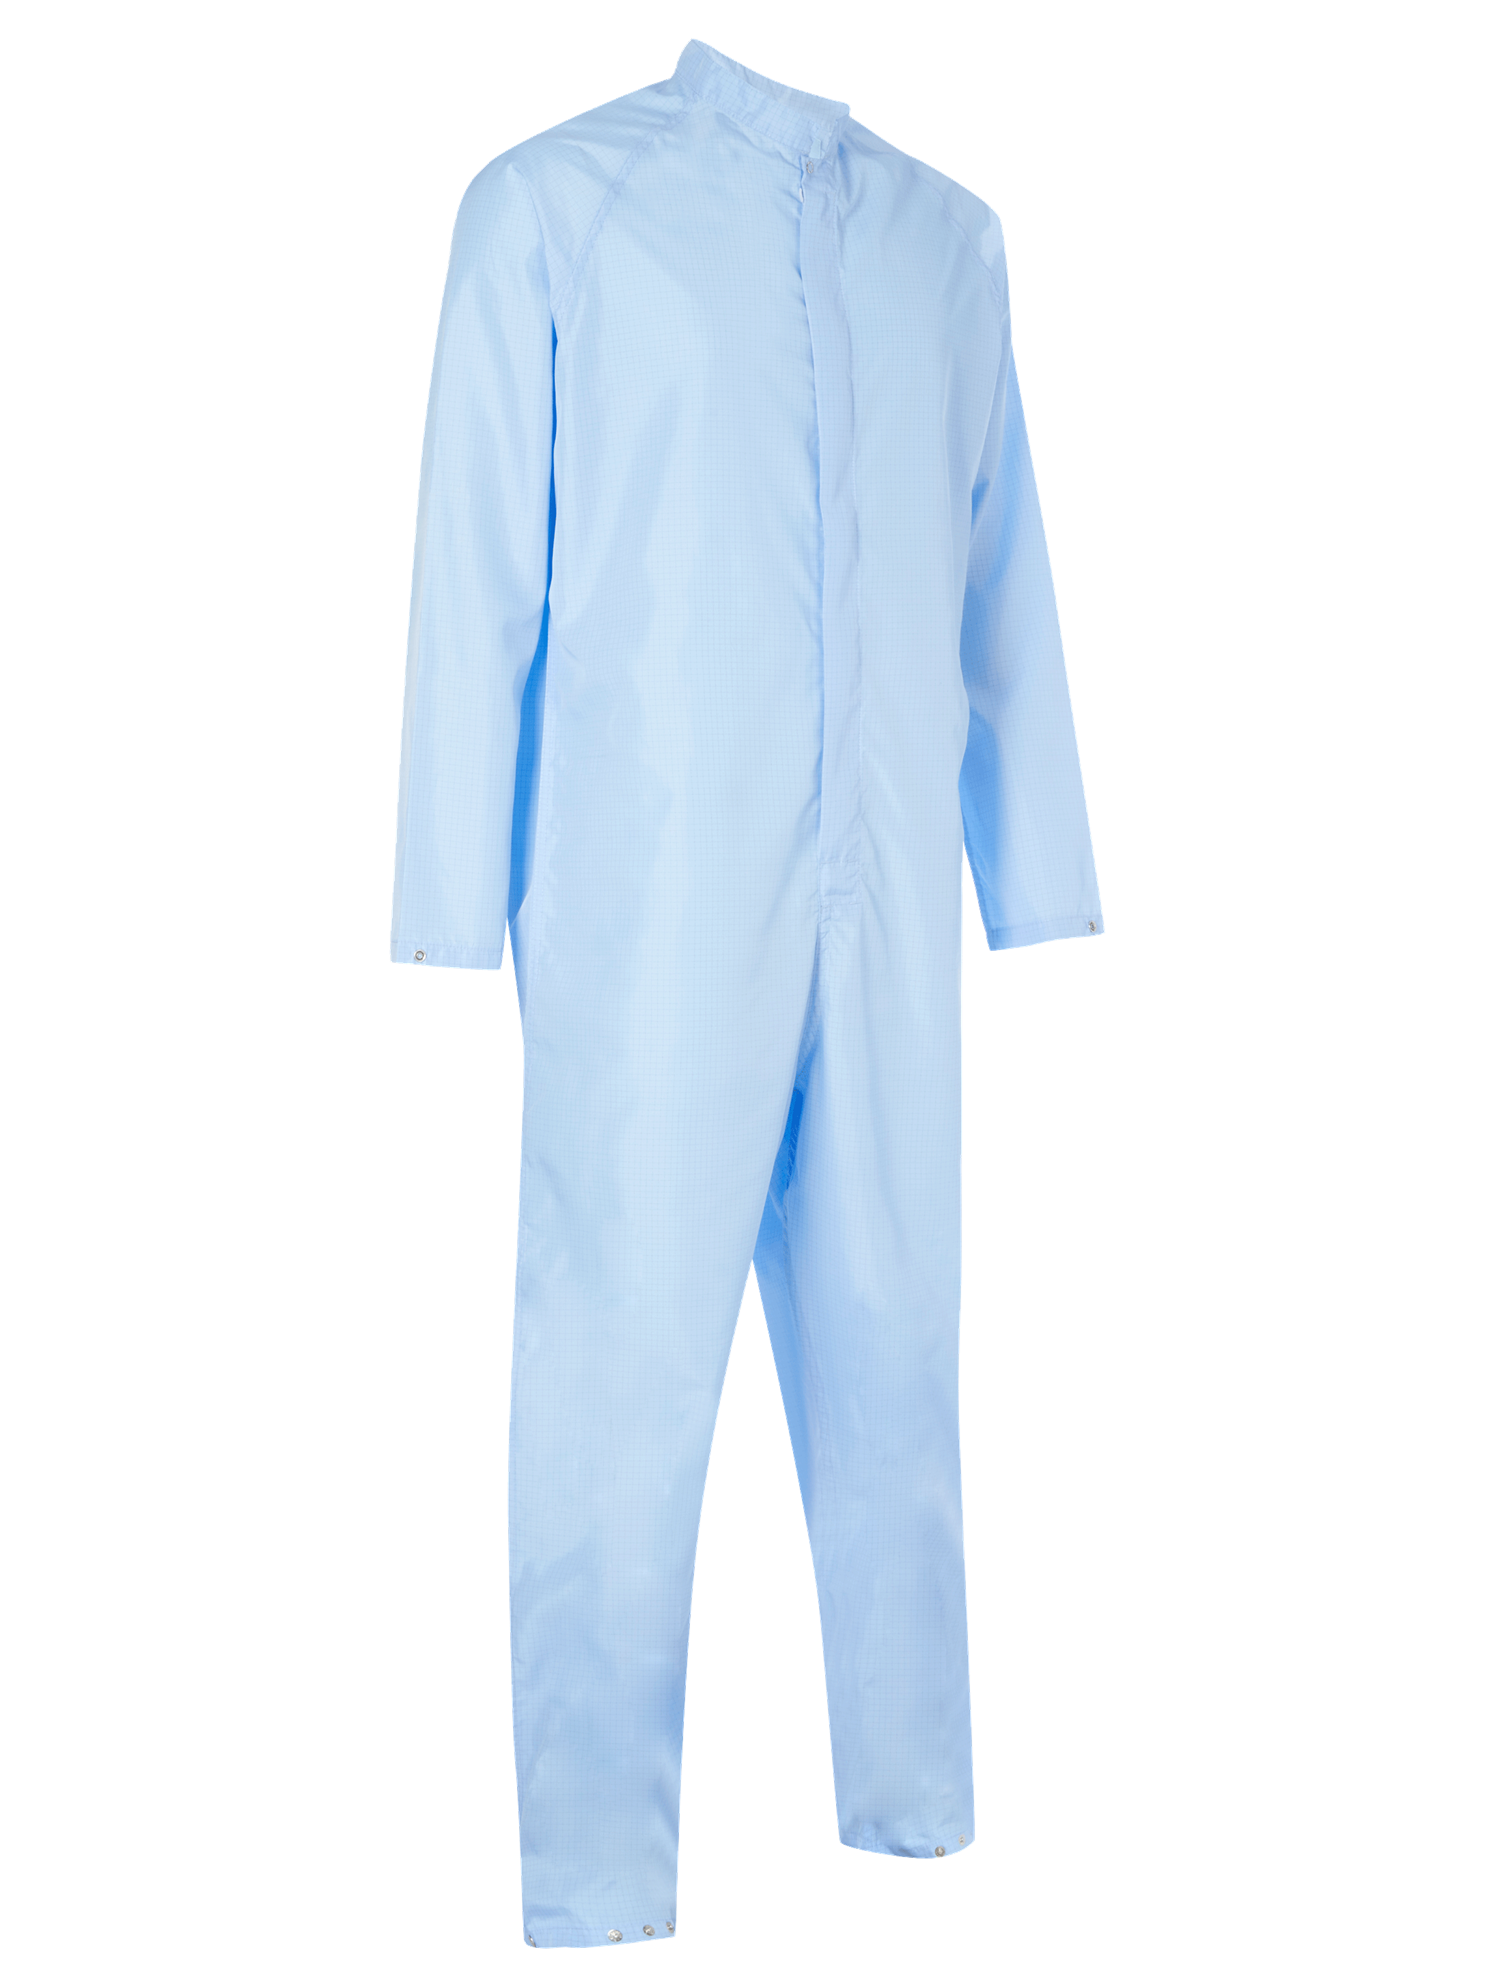 Picture of Cleanroom Coverall - Light Blue